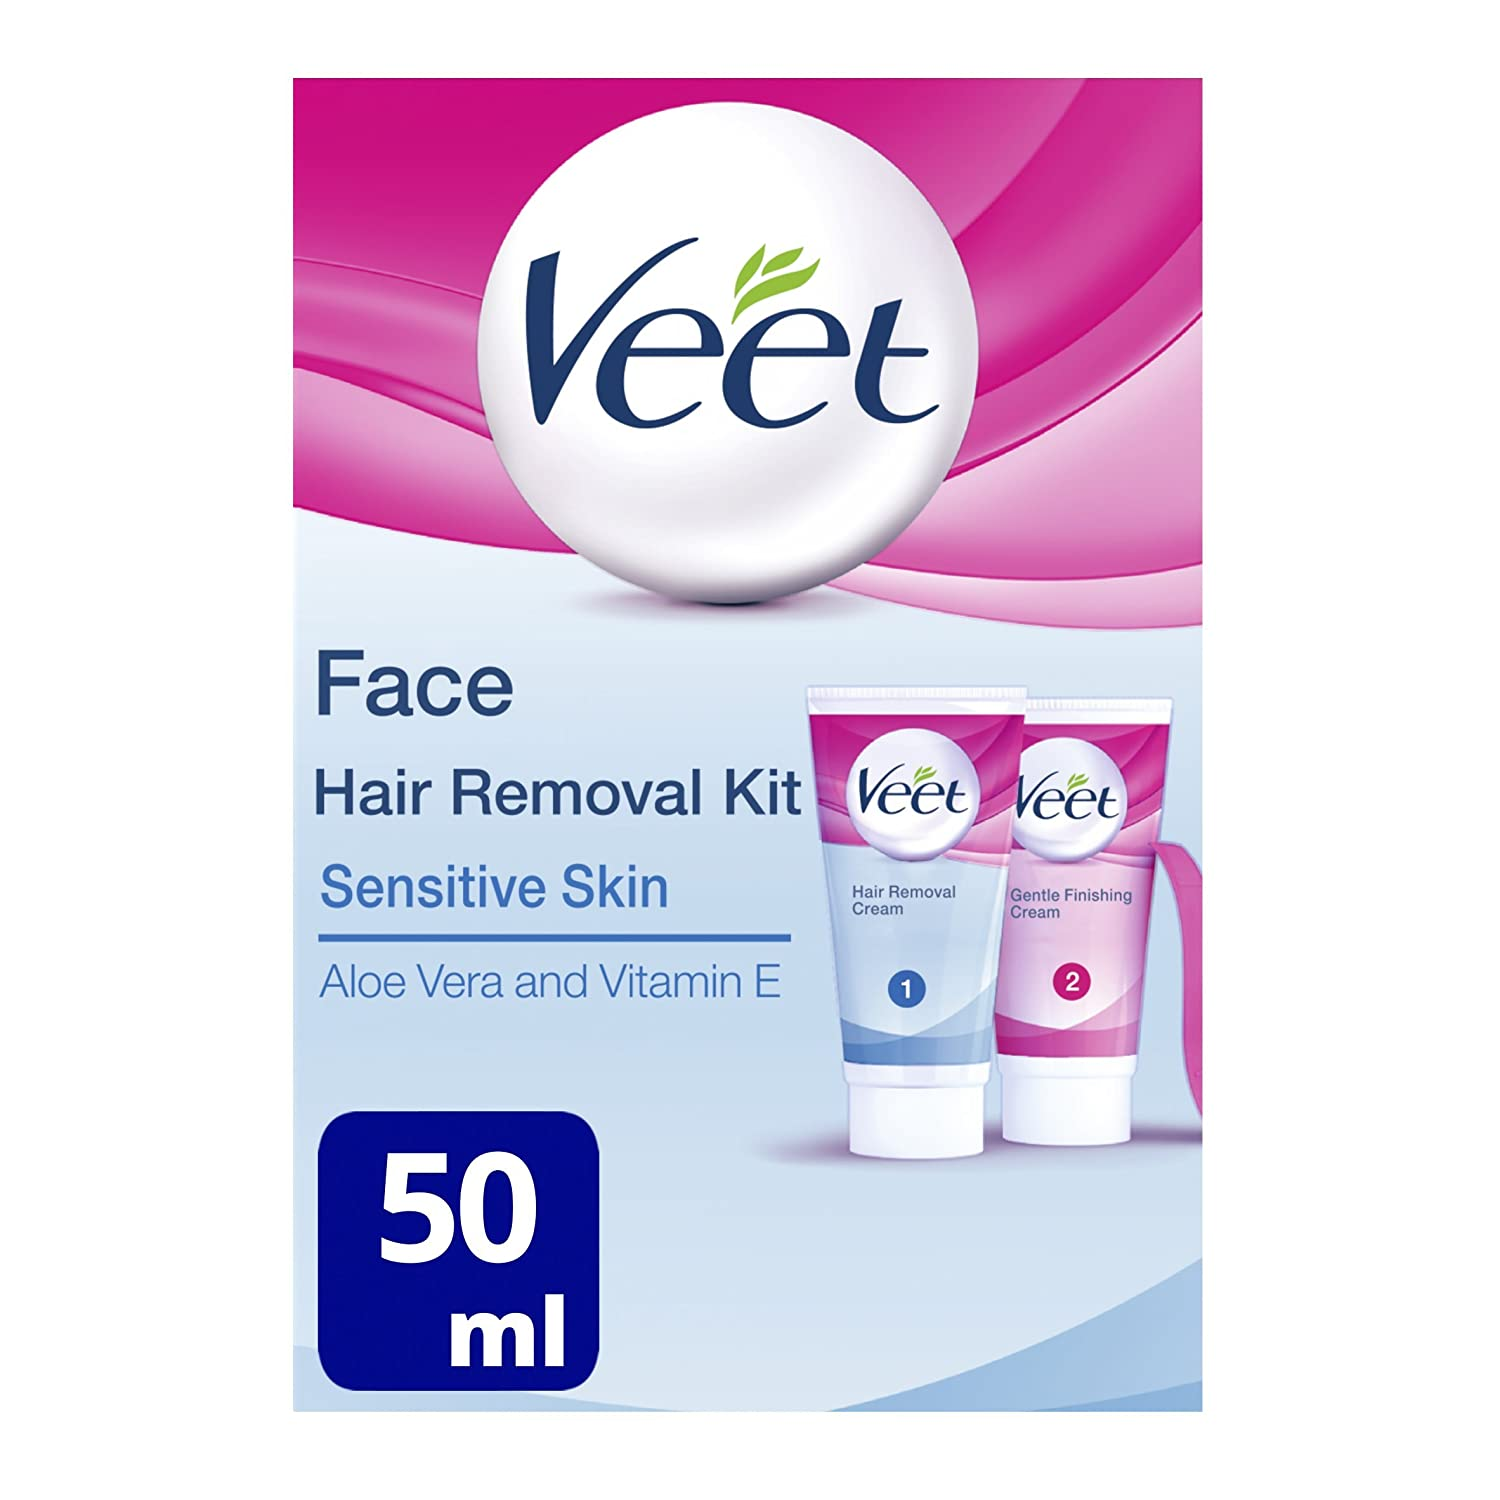 Veet Face Hair Removal Kit Sensitive Skin Ml Amazon Co Uk Health Personal Care